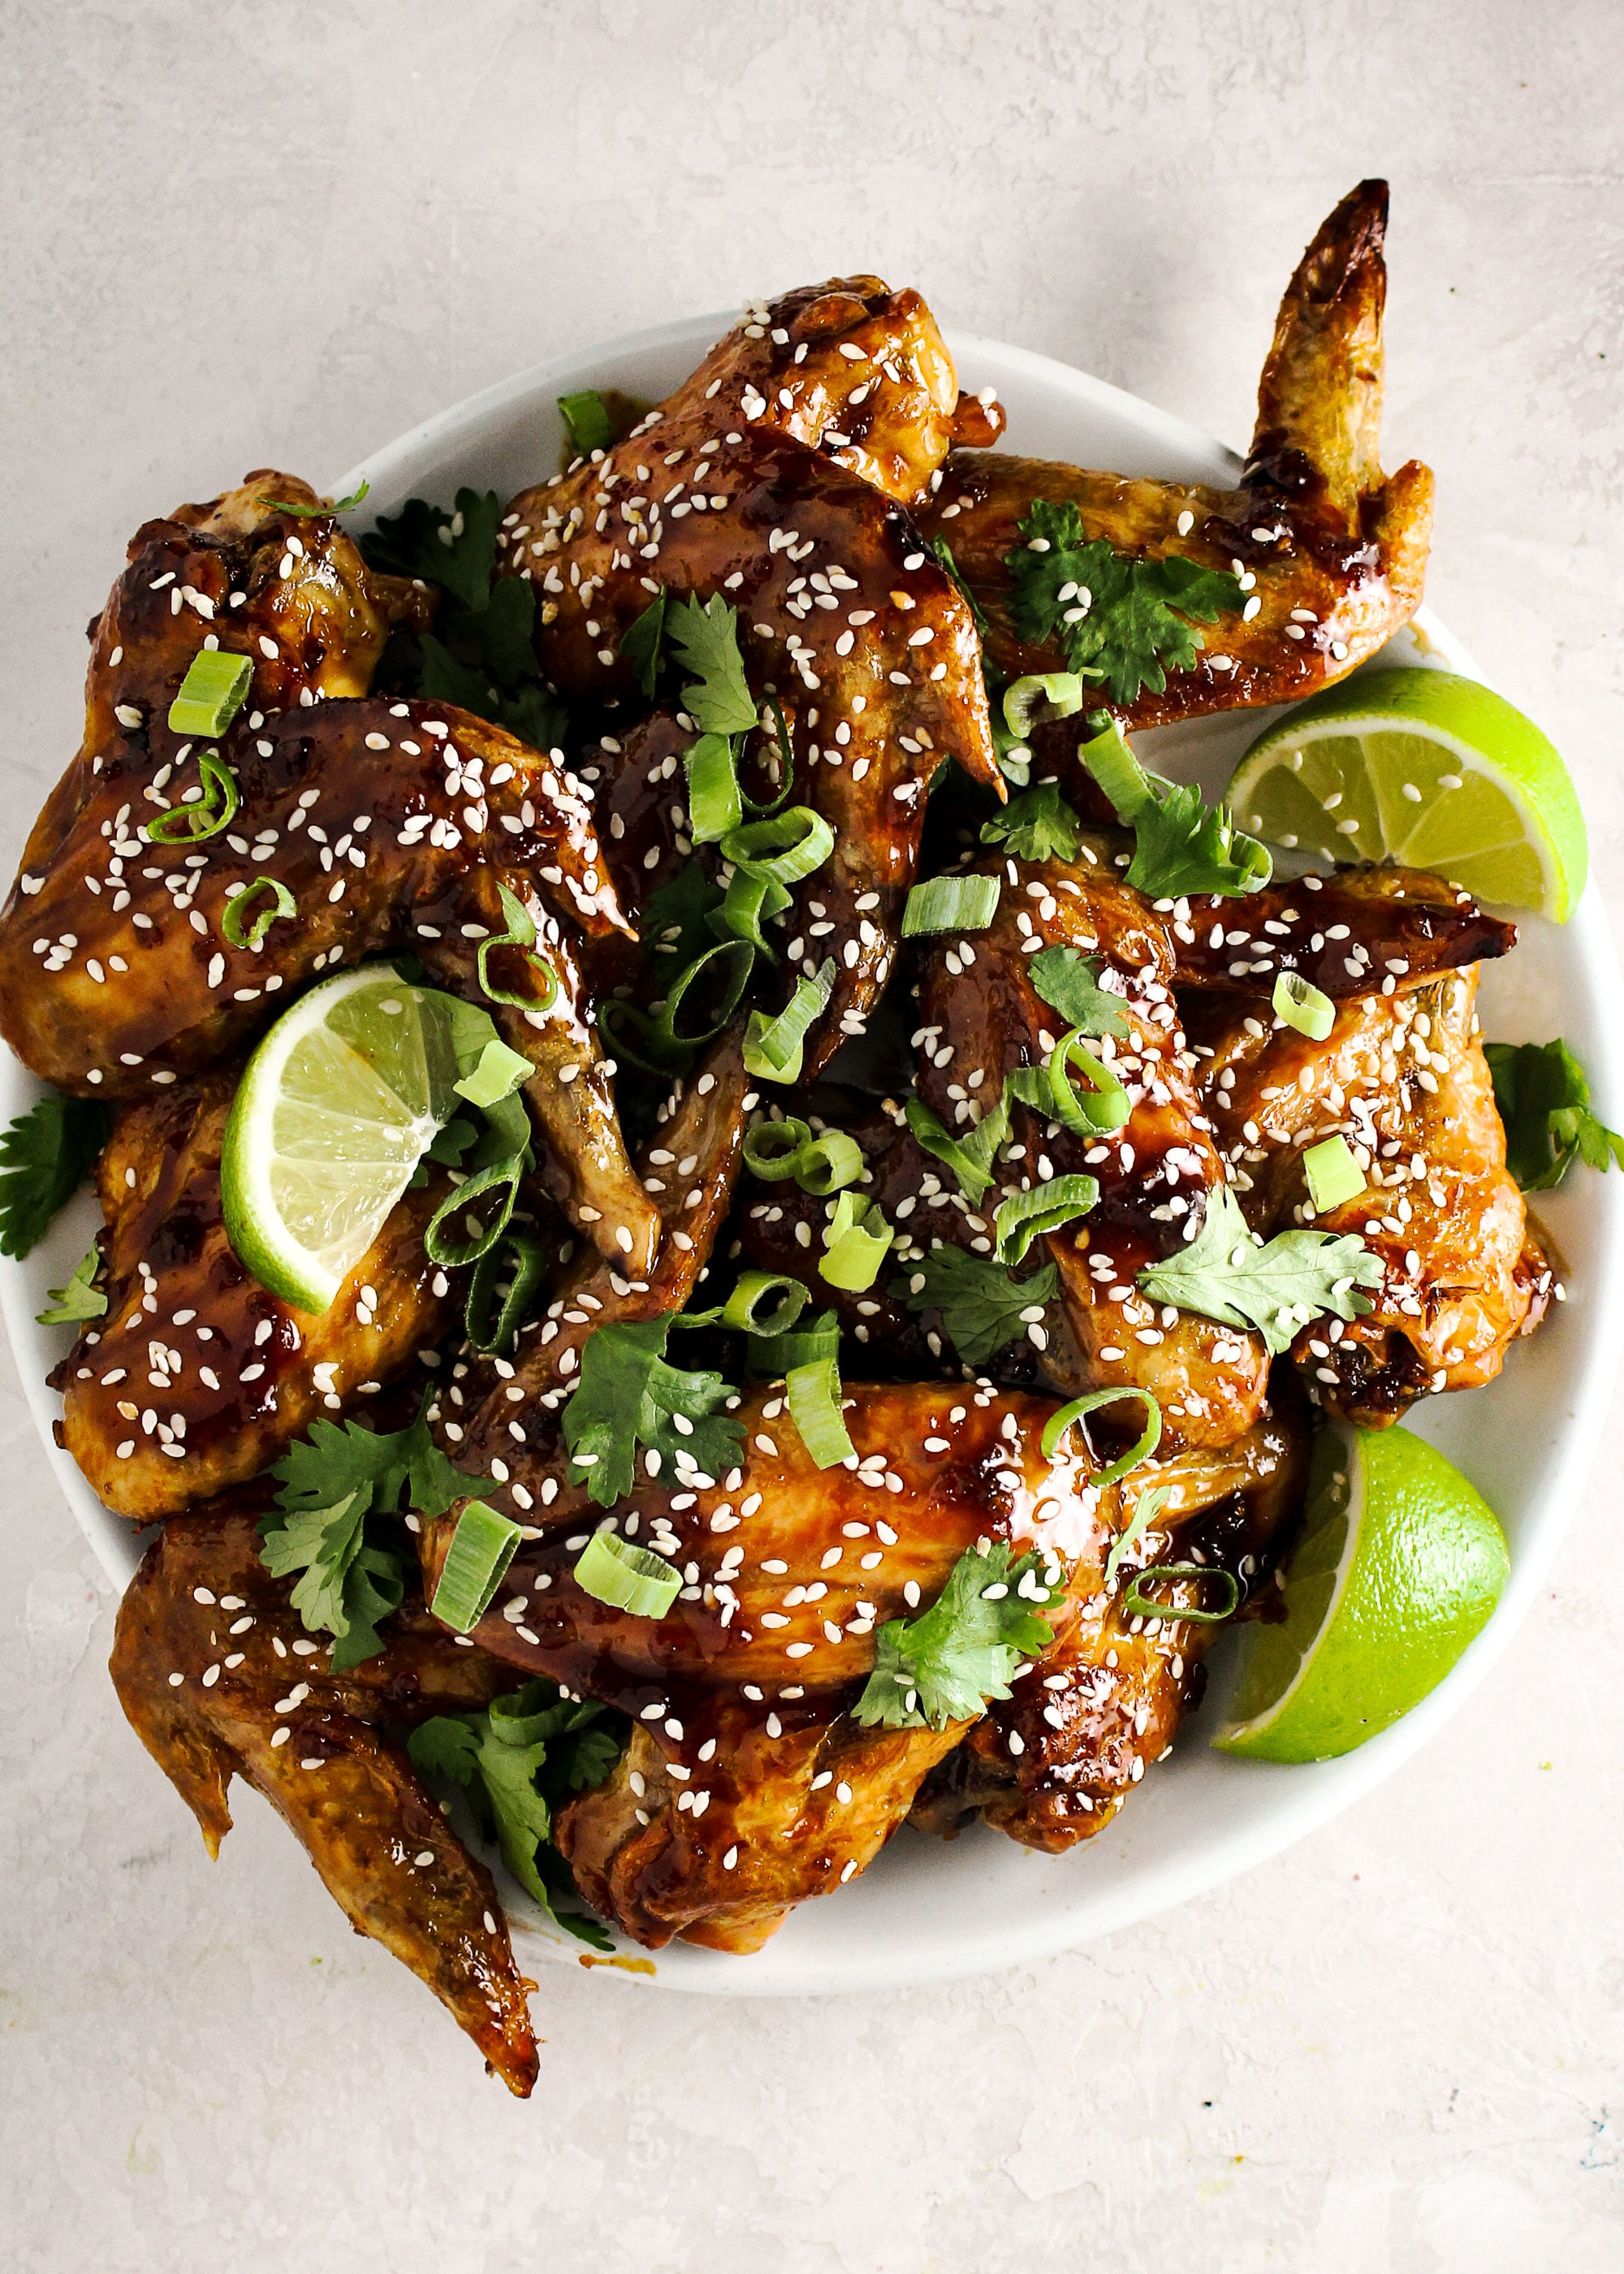 Crispy honey sriracha wings topped with green onions and sesame seeds.